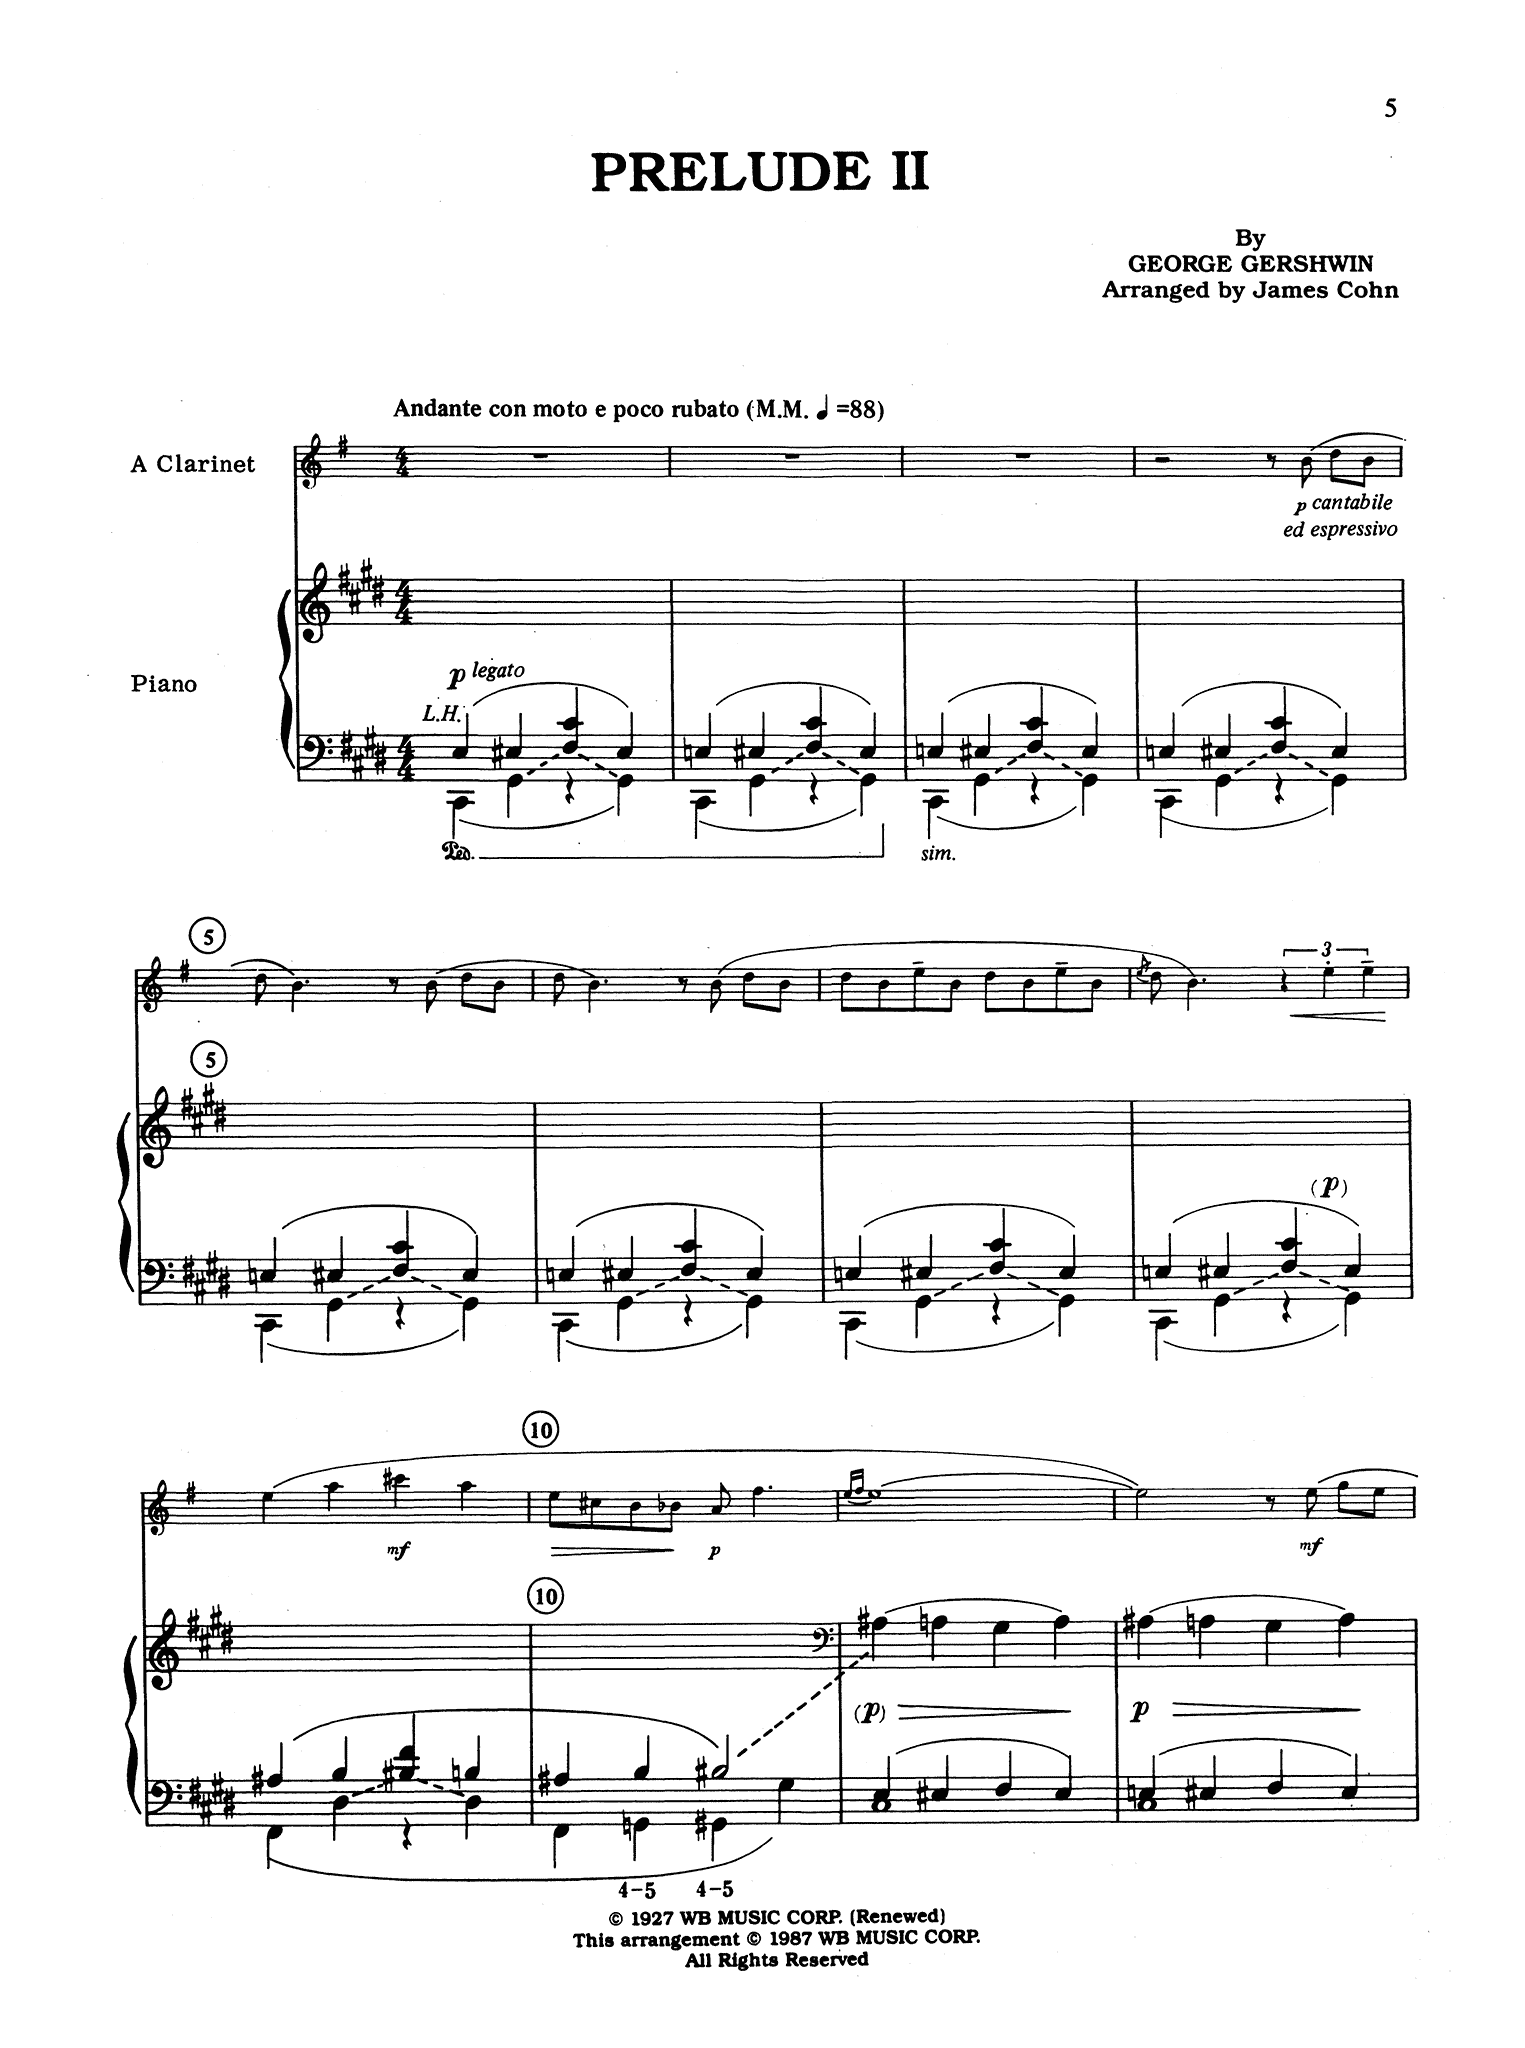 Gershwin 3 Preludes, arranged by Cohn - Movement 2